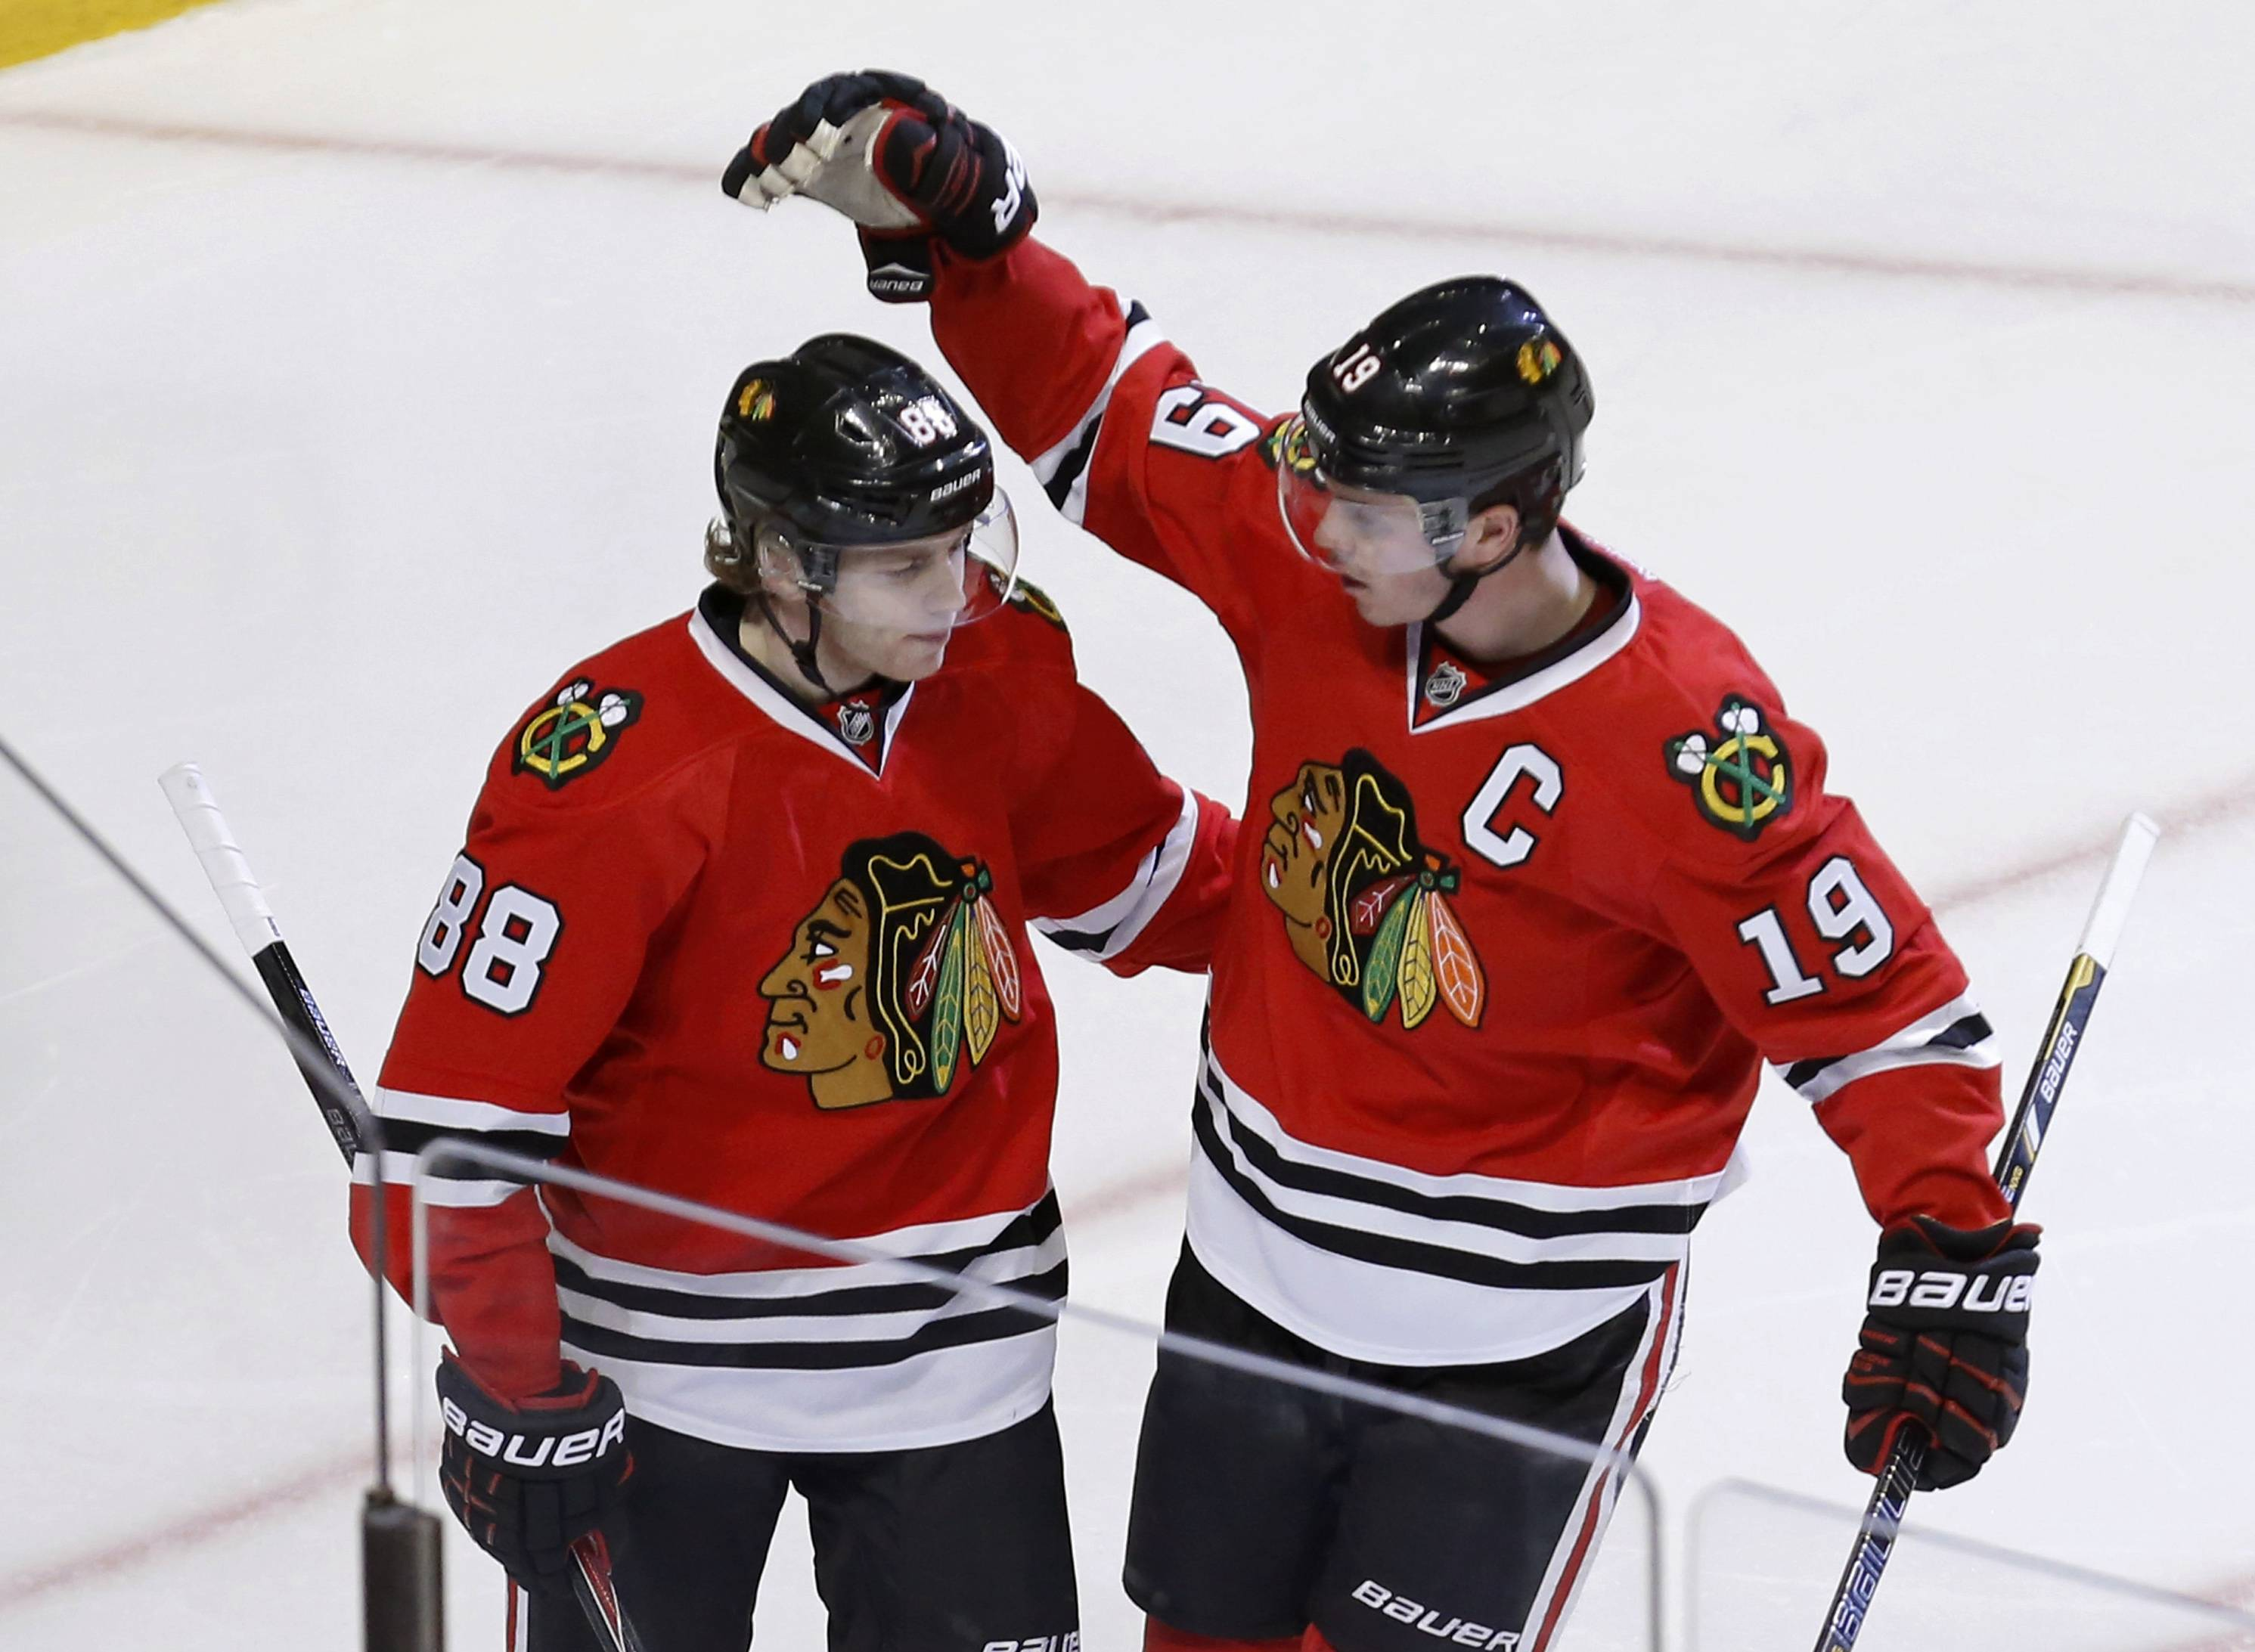 They're back: Toews, Kane ready to go